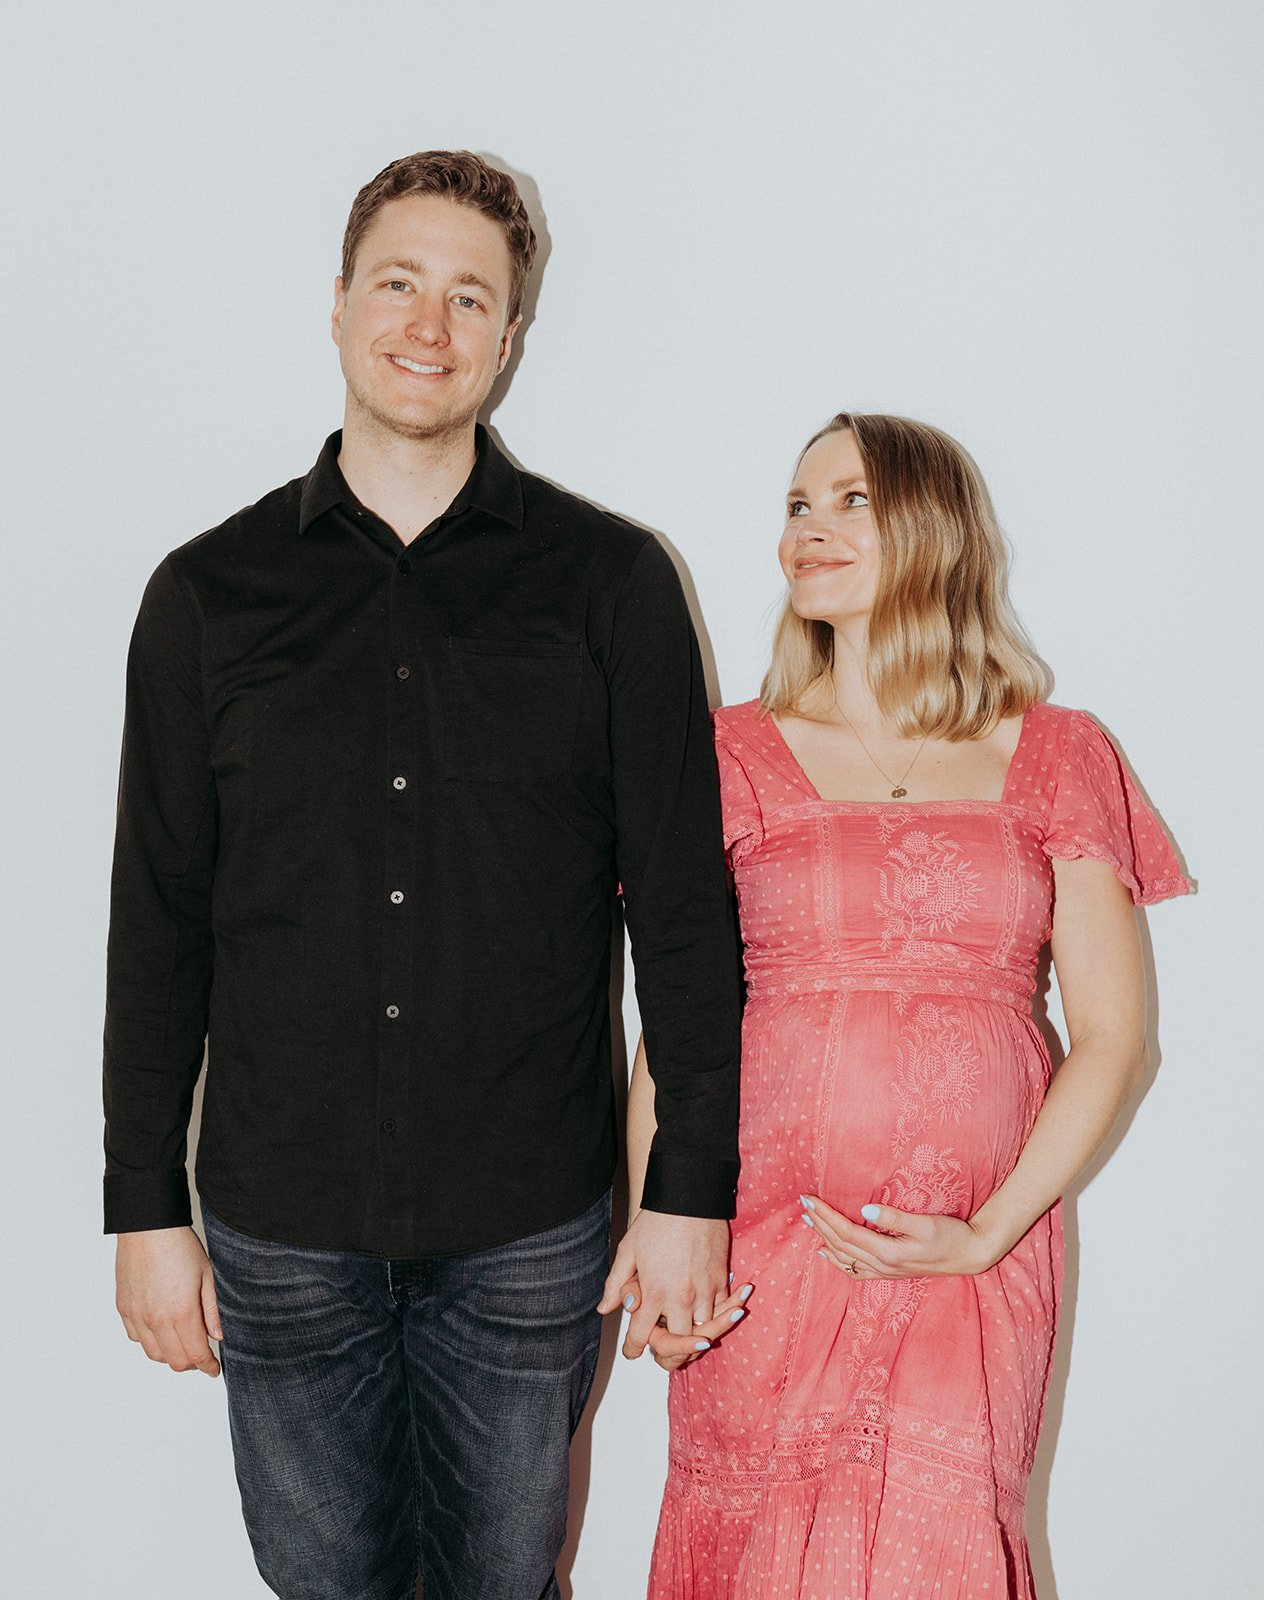 man holding hands with a pregnant woman in a pink dress